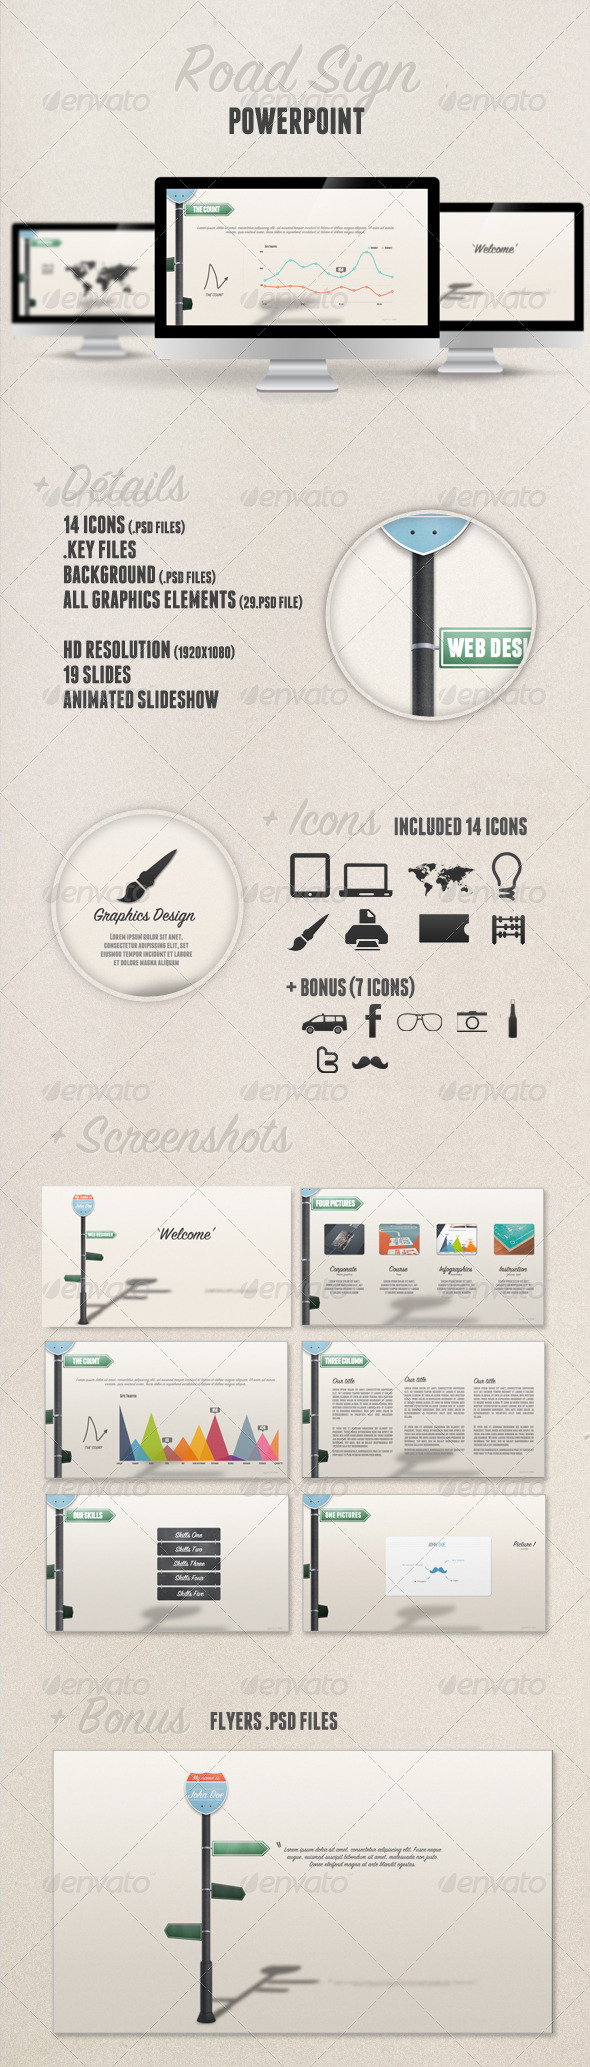 GraphicRiver Road Sign Powerpoint Presentation 1600855